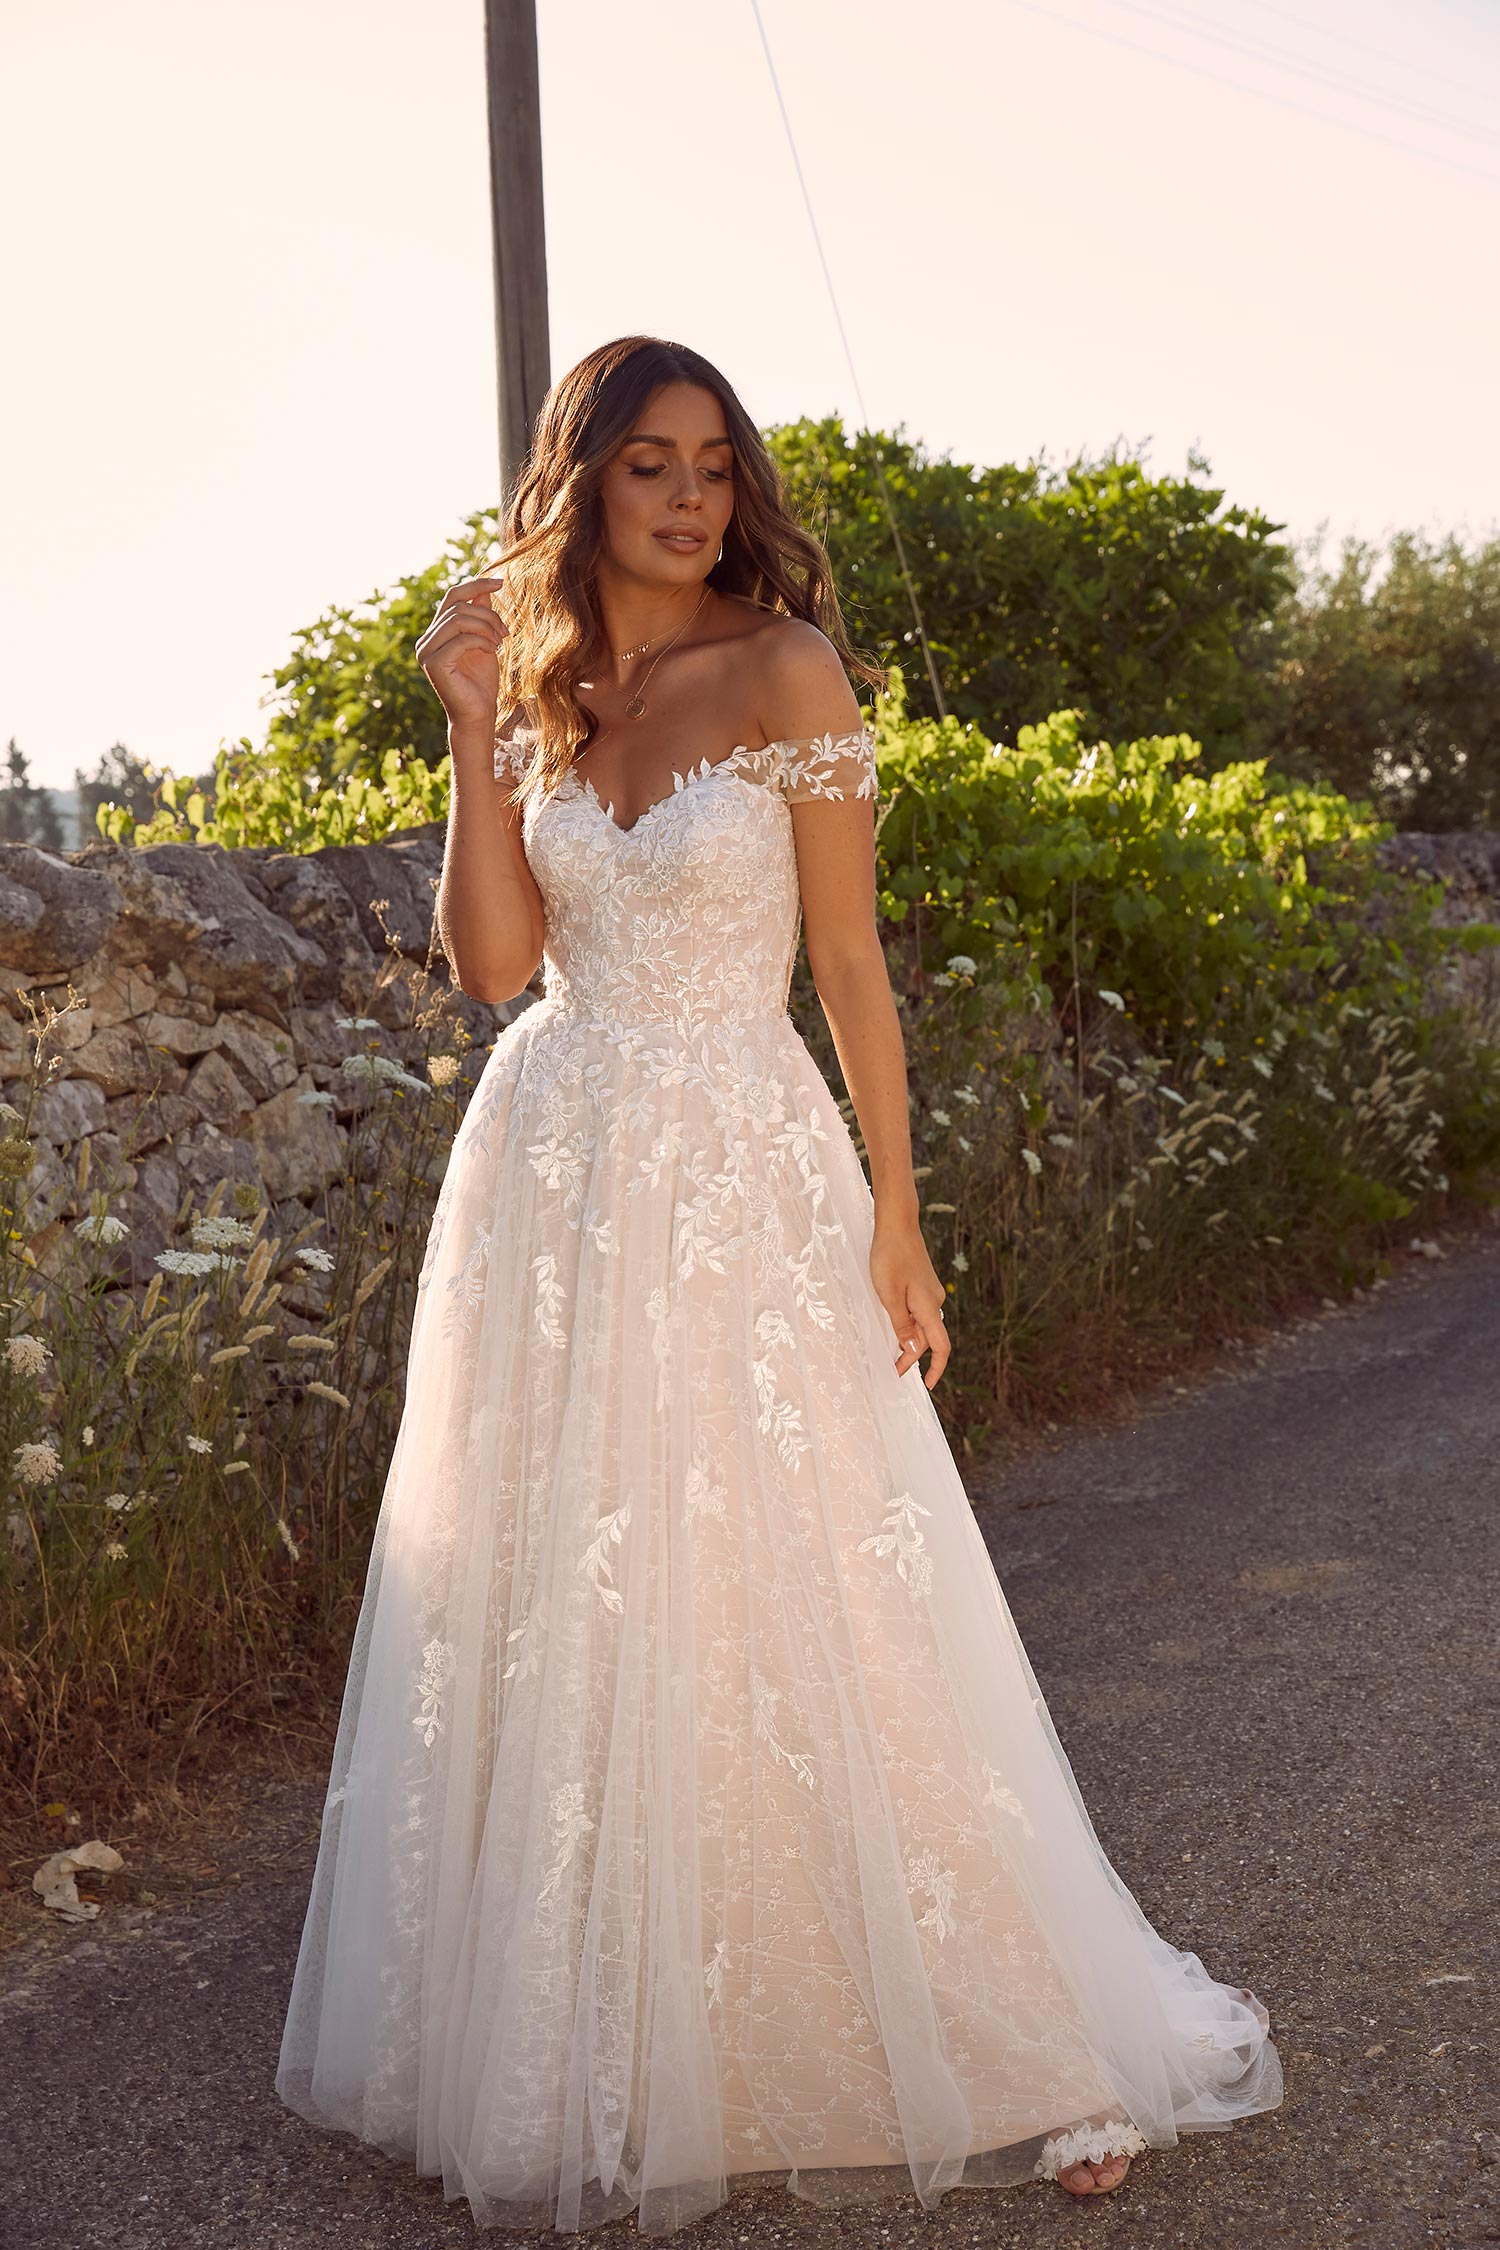 MARCHELLE-ML10609-SWEET-HEART-NECK-FULL-LENGTH-FLORAL-LACE-WITH-OFF-THE-SHOULDER-STRAPS-WEDDING-DRESS-MADI-LANE-BRIDAL1